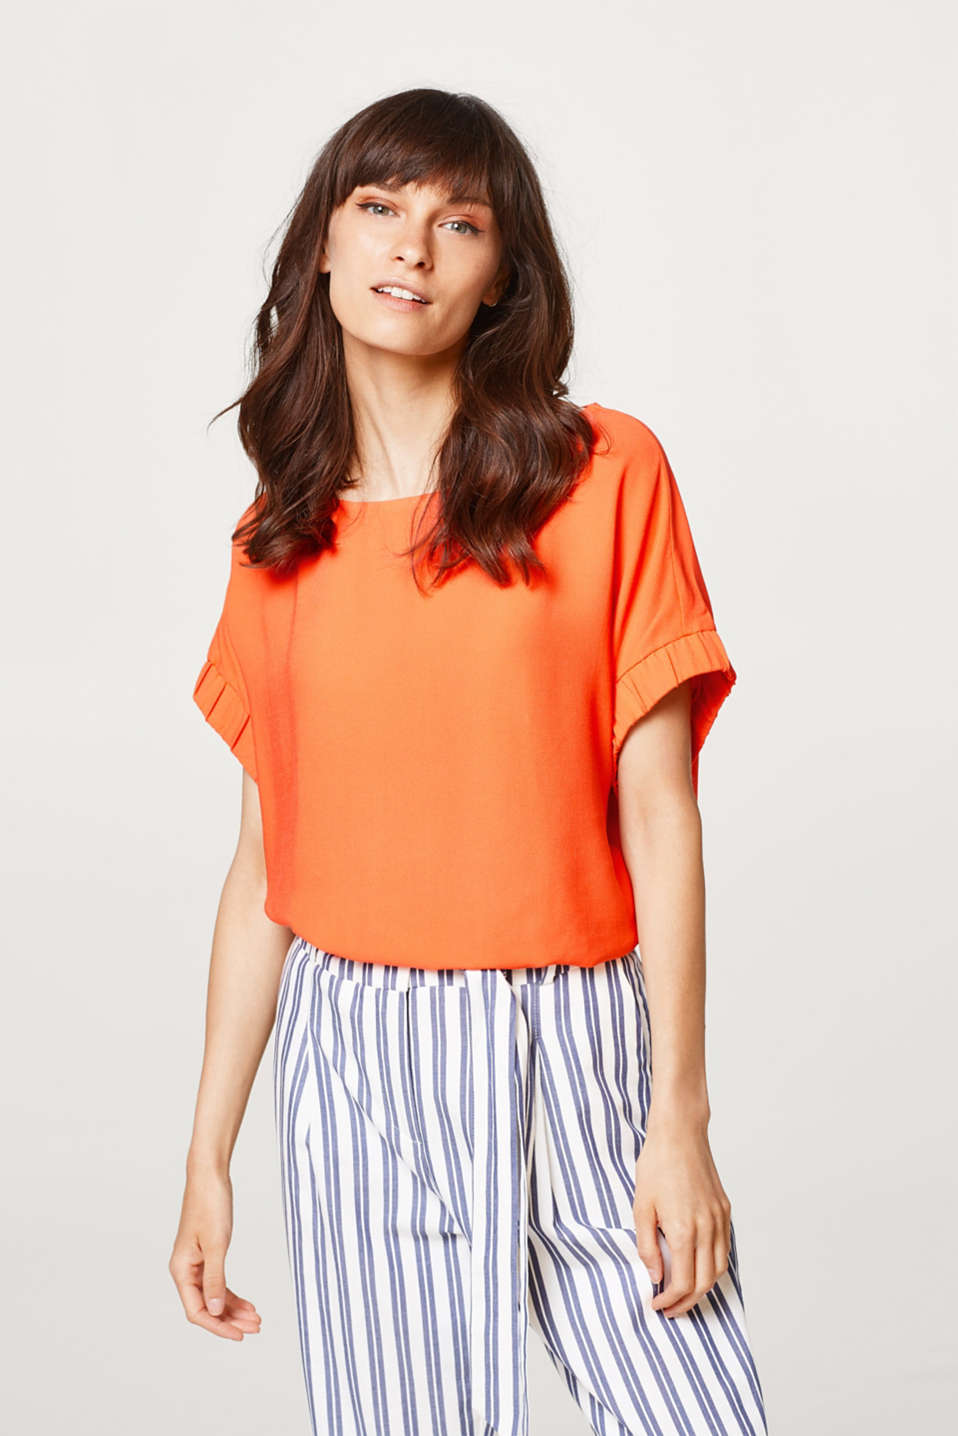 Esprit - Blouse top in crêpe with a flowing drape